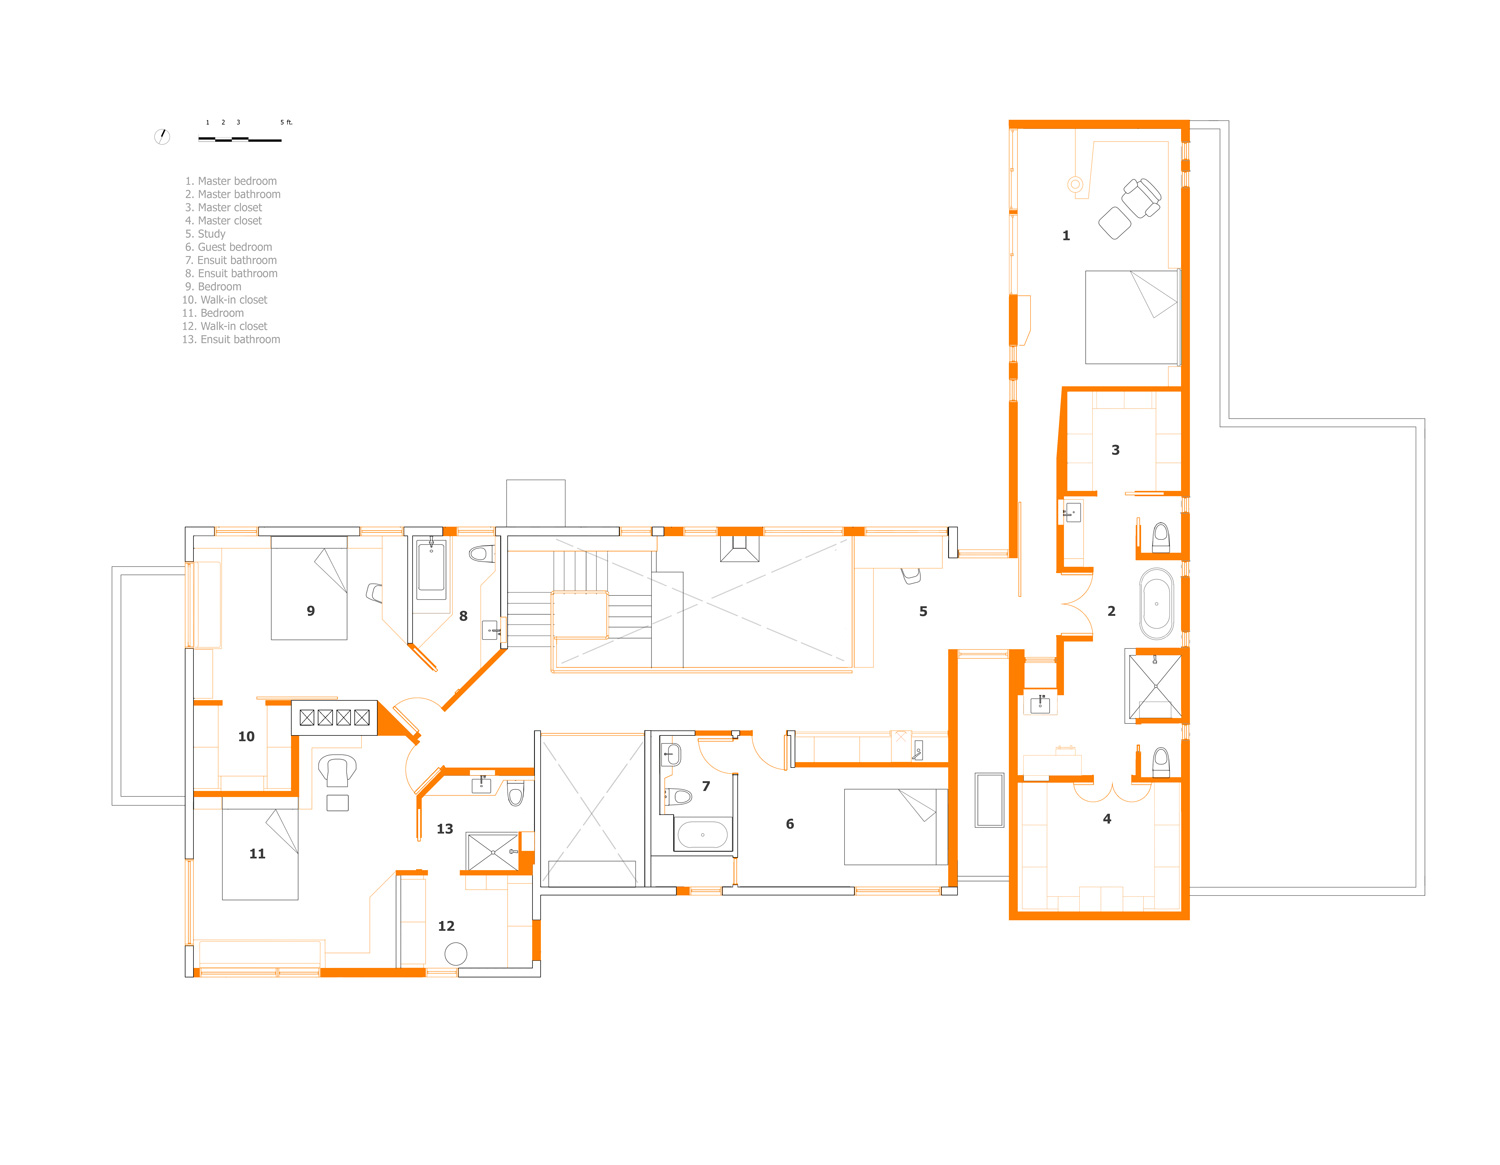 Unit 7 Architecture | Residential - Handsart Residence ZT - SECOND FLOOR PLAN